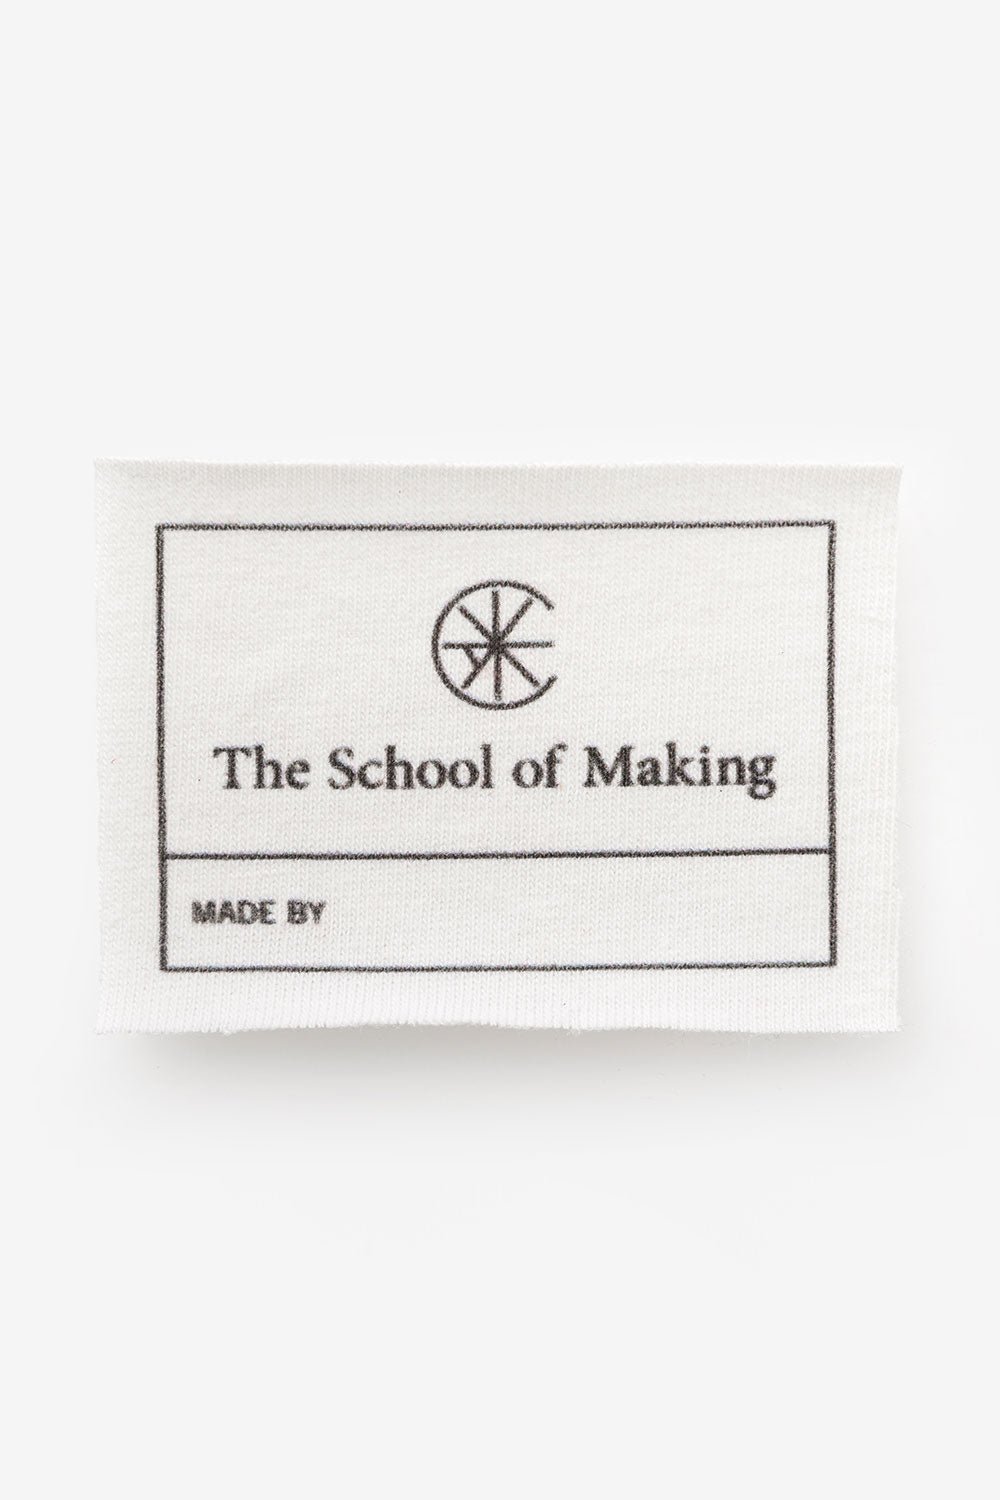 The School of Making Classic Studio Week Workshop for Learning Hand-Sewing